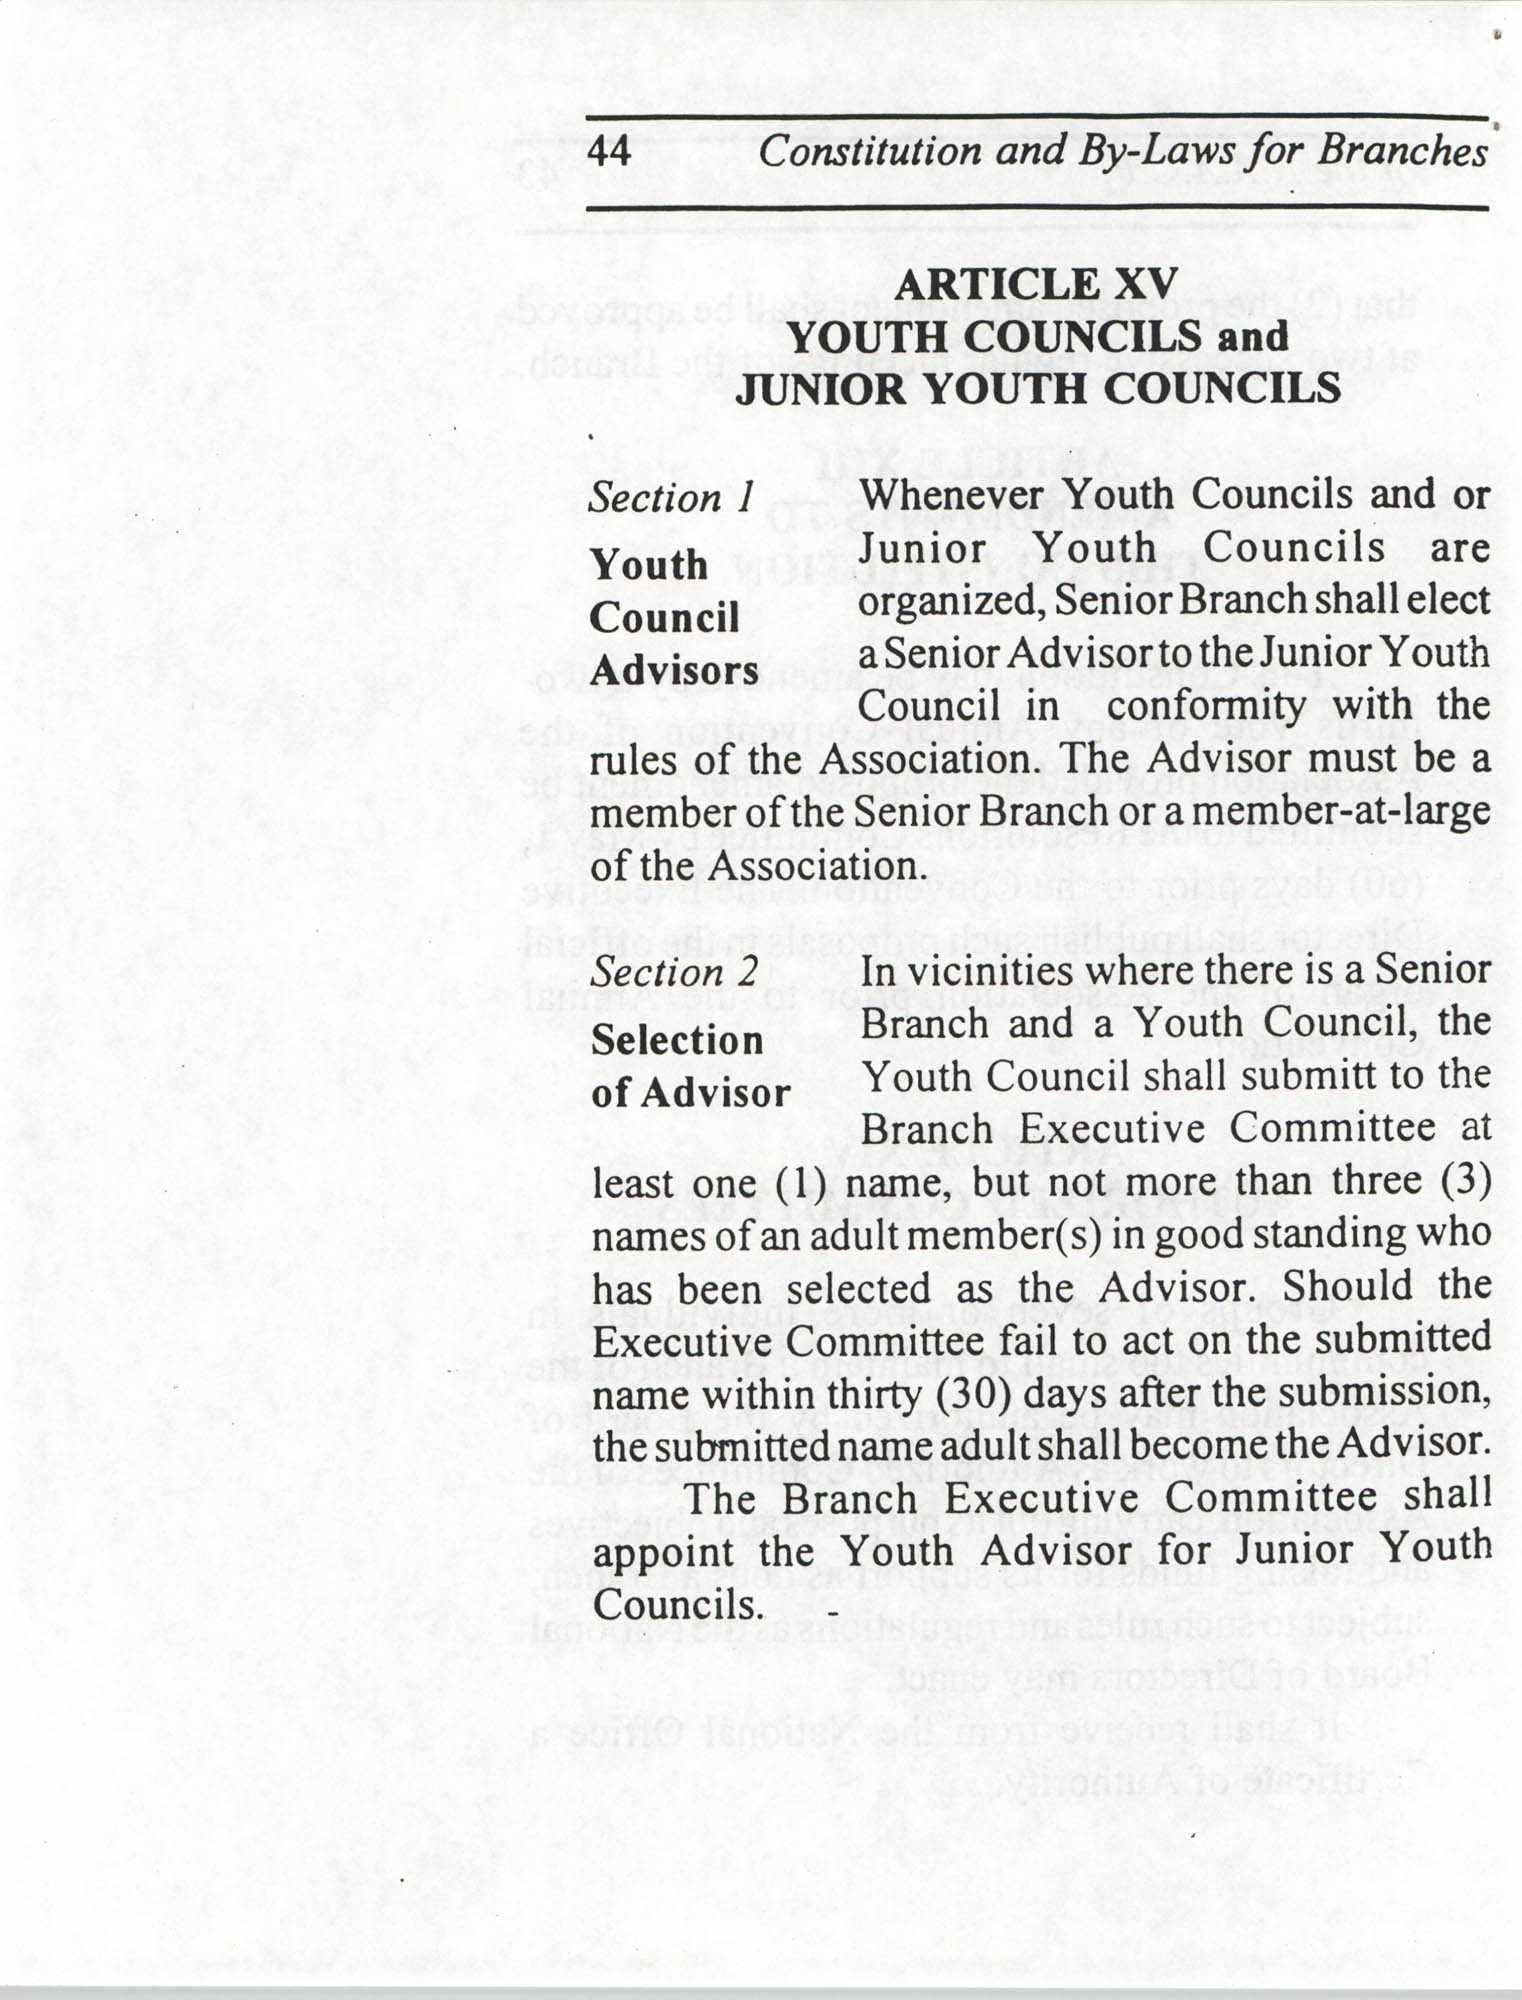 Constitution and By-Laws for Branches of the NAACP, July 1994, Page 44